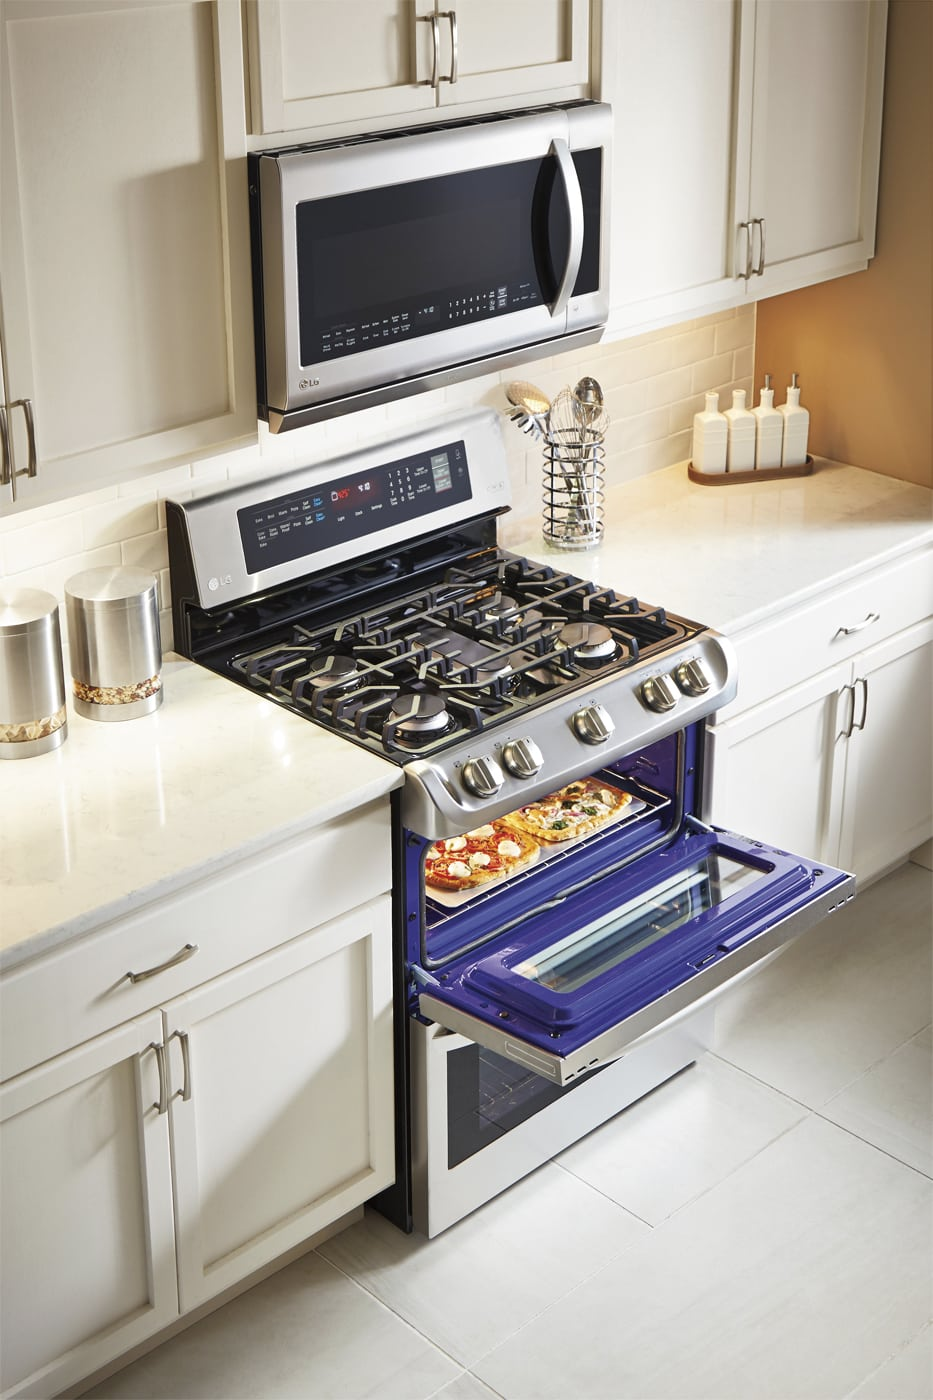 Update Your Kitchen for the Holidays with LG Appliances